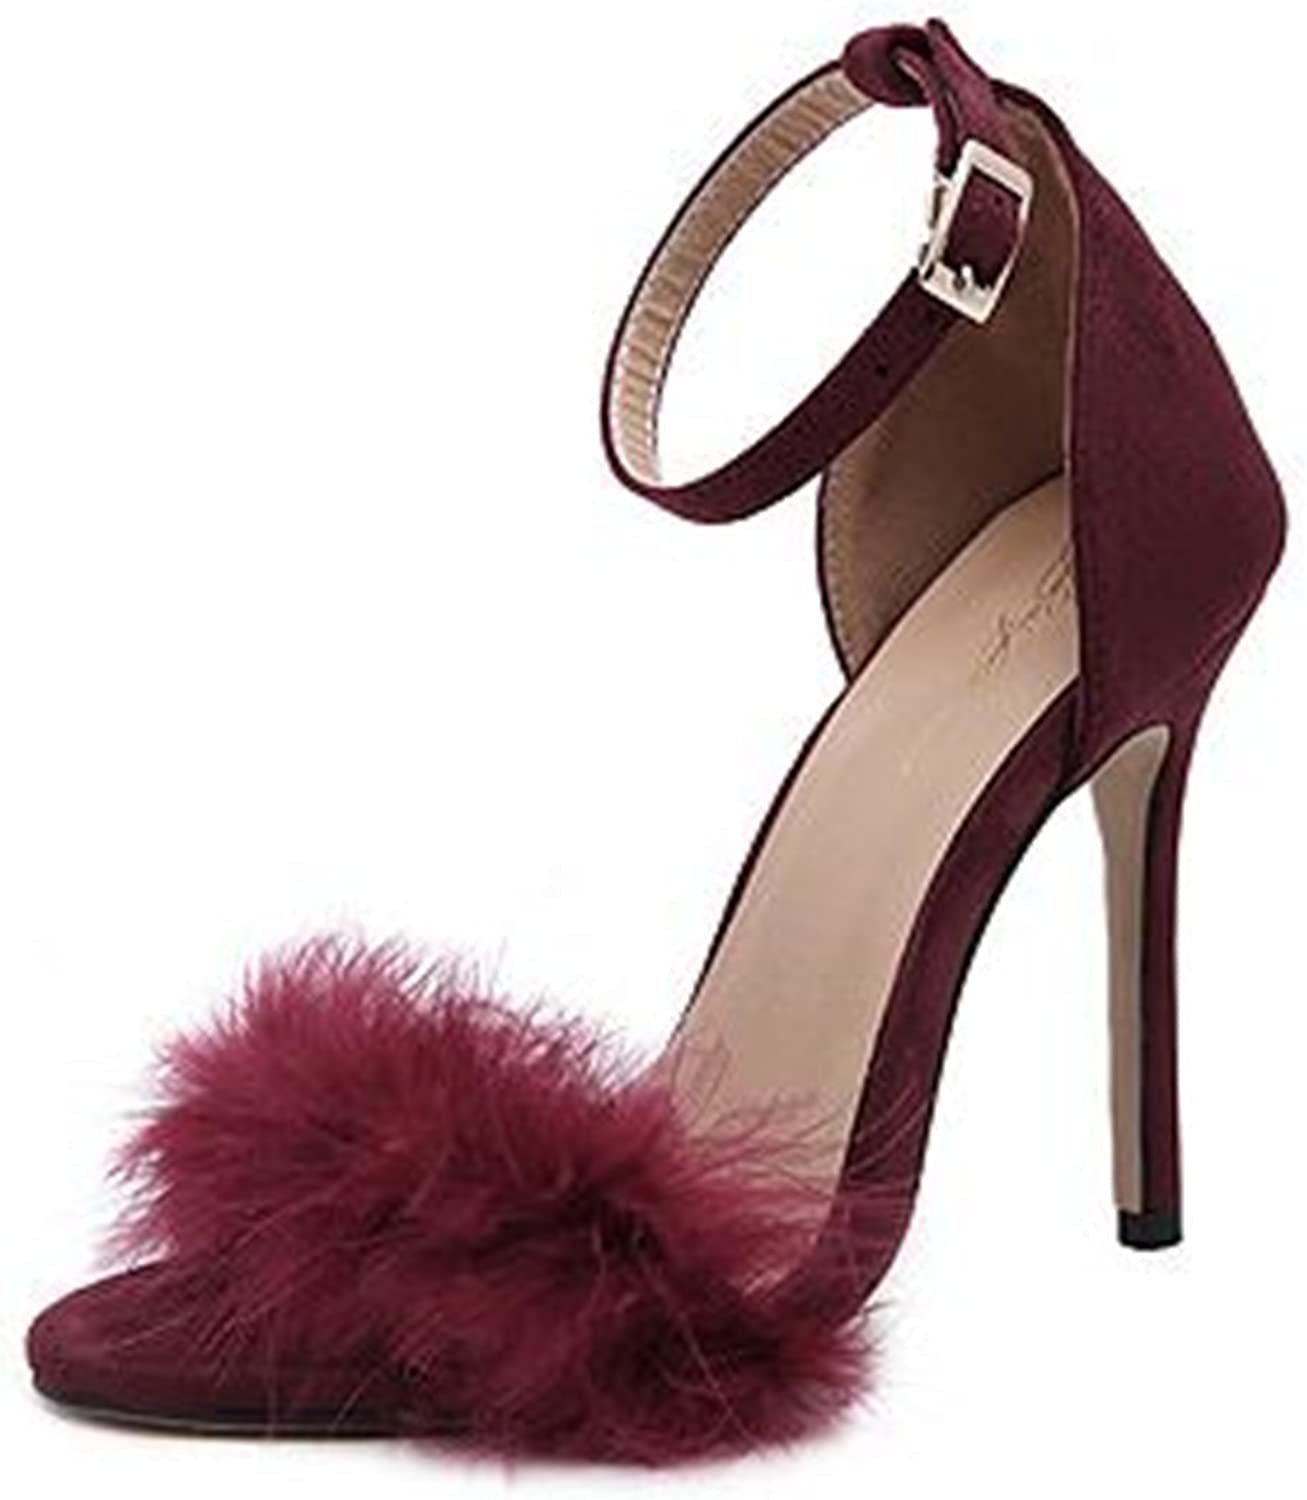 pink town Women's Ankle Strap Stiletto Party High Heel Dress Sandals